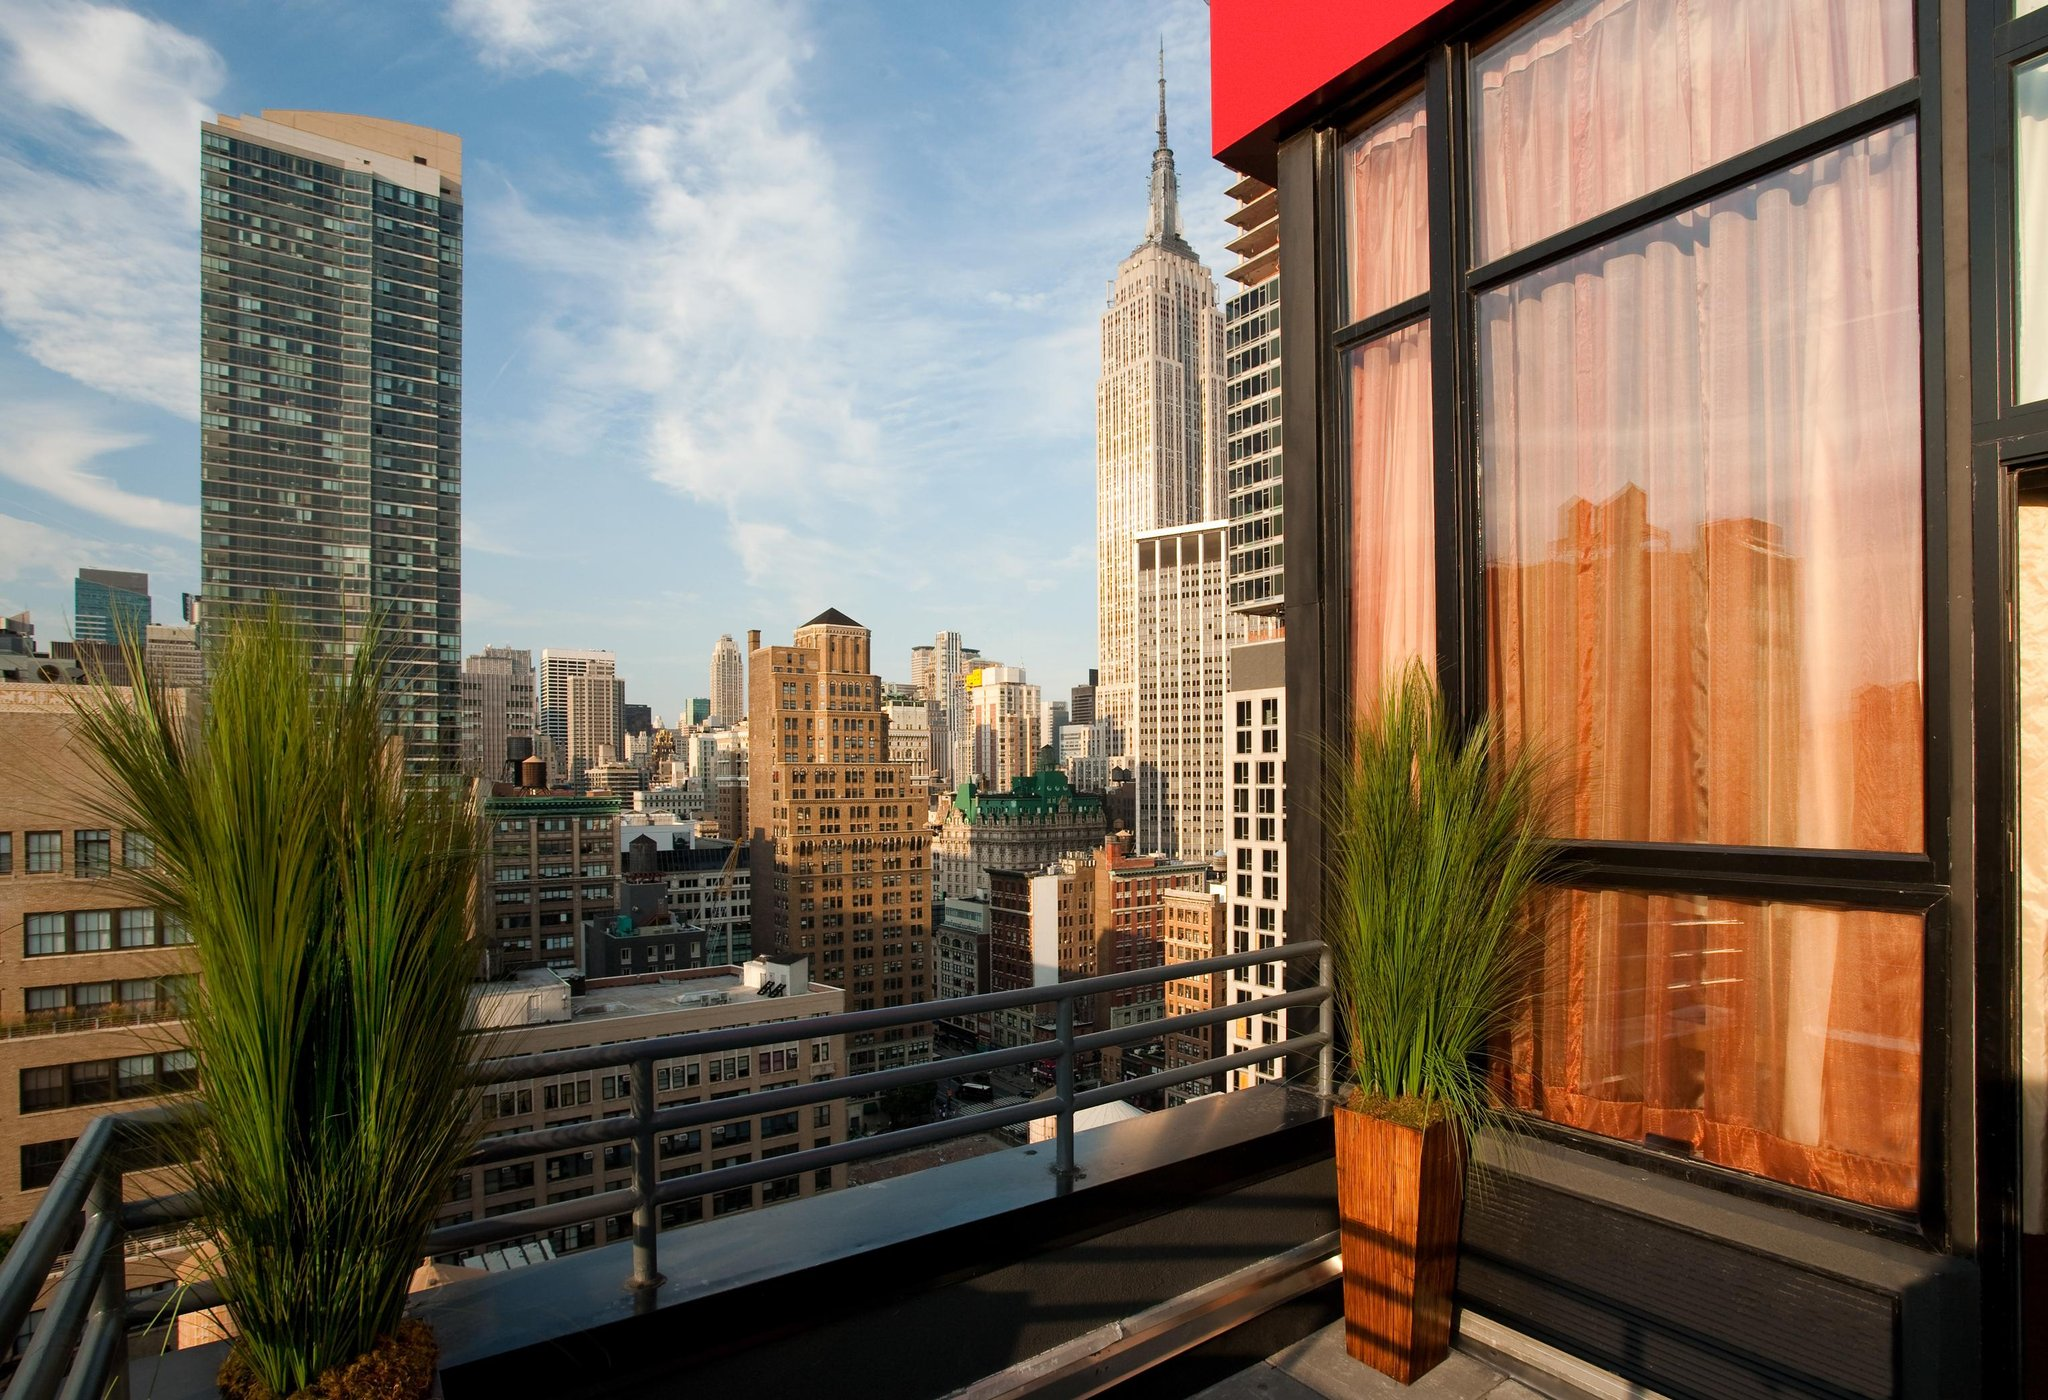 Meetings & Events at DoubleTree by Hilton Hotel New York City